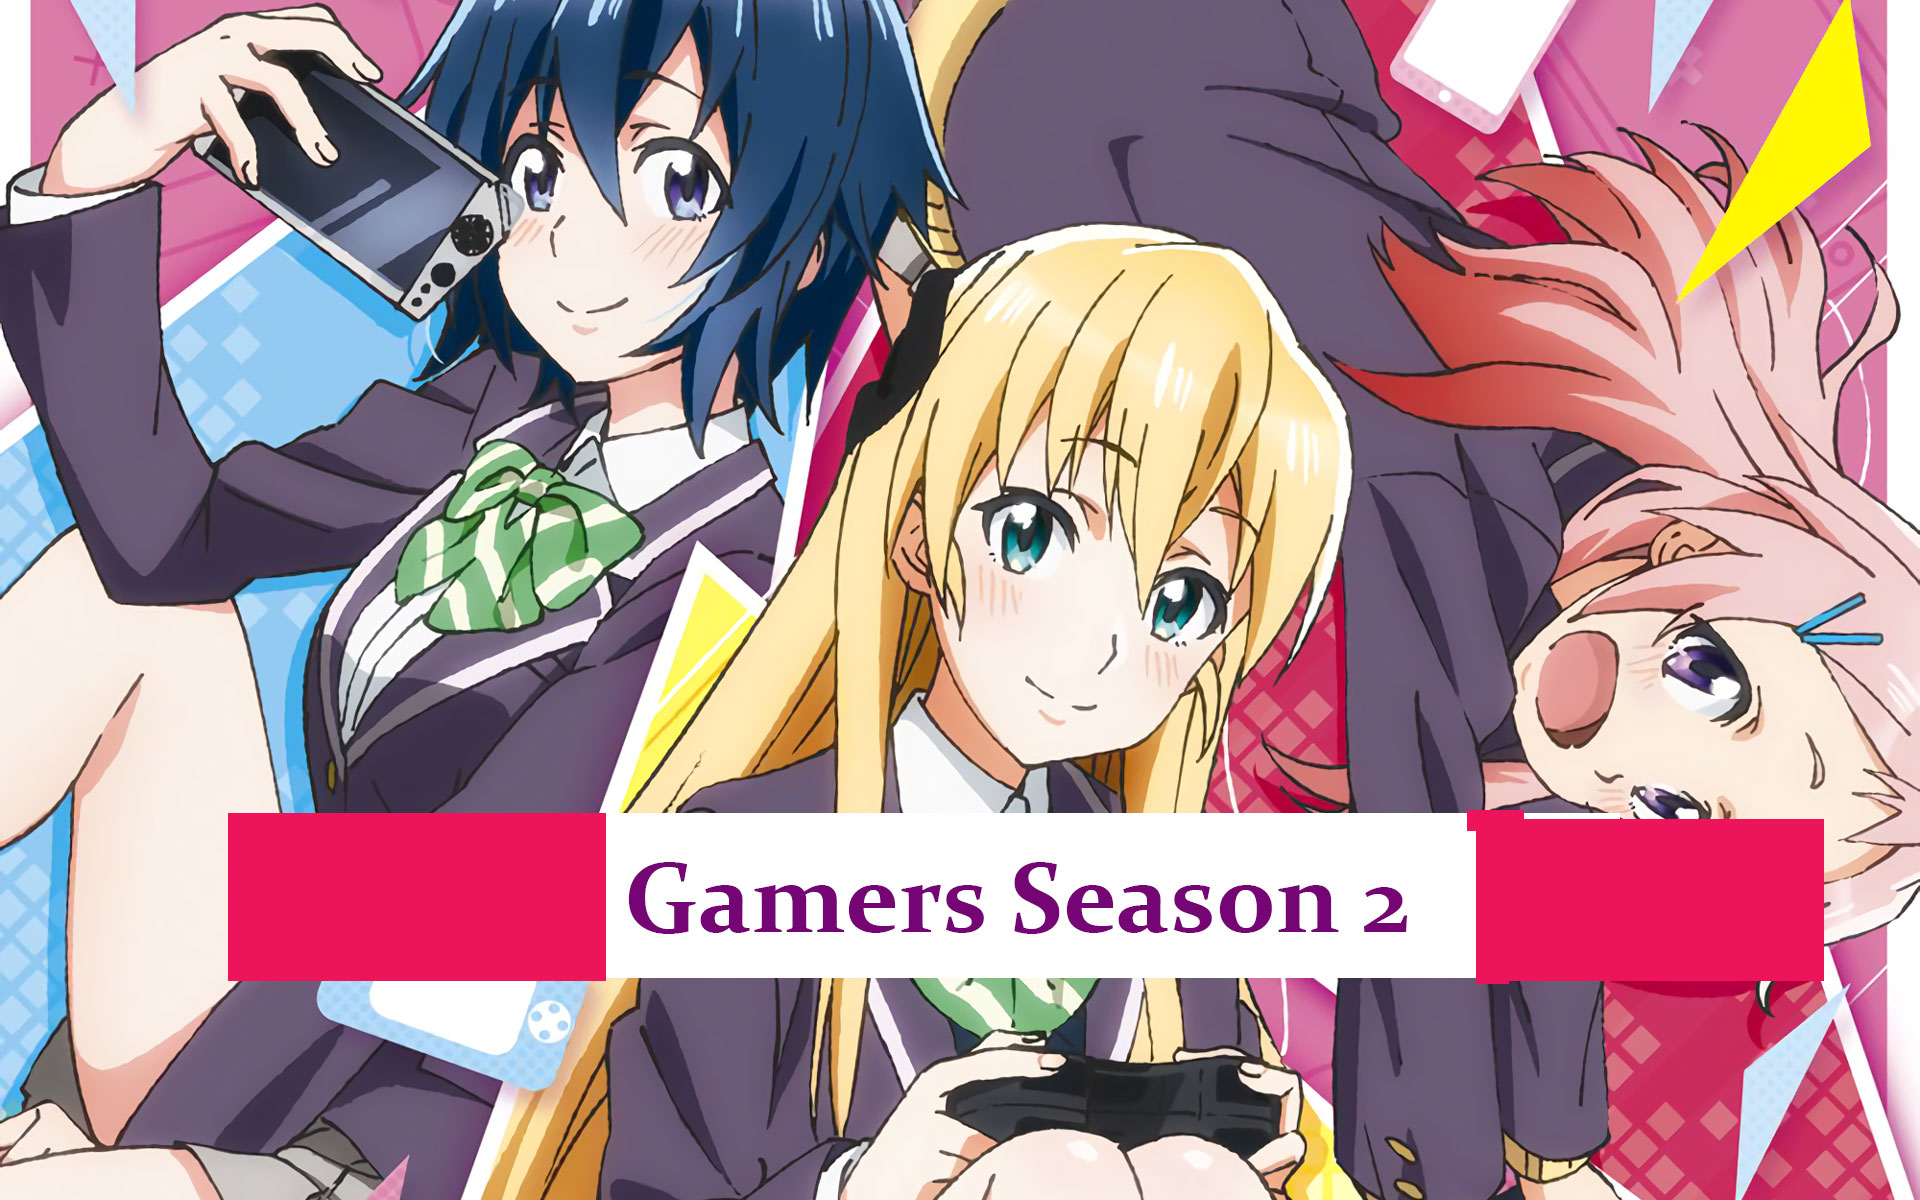 Gamers Season 2